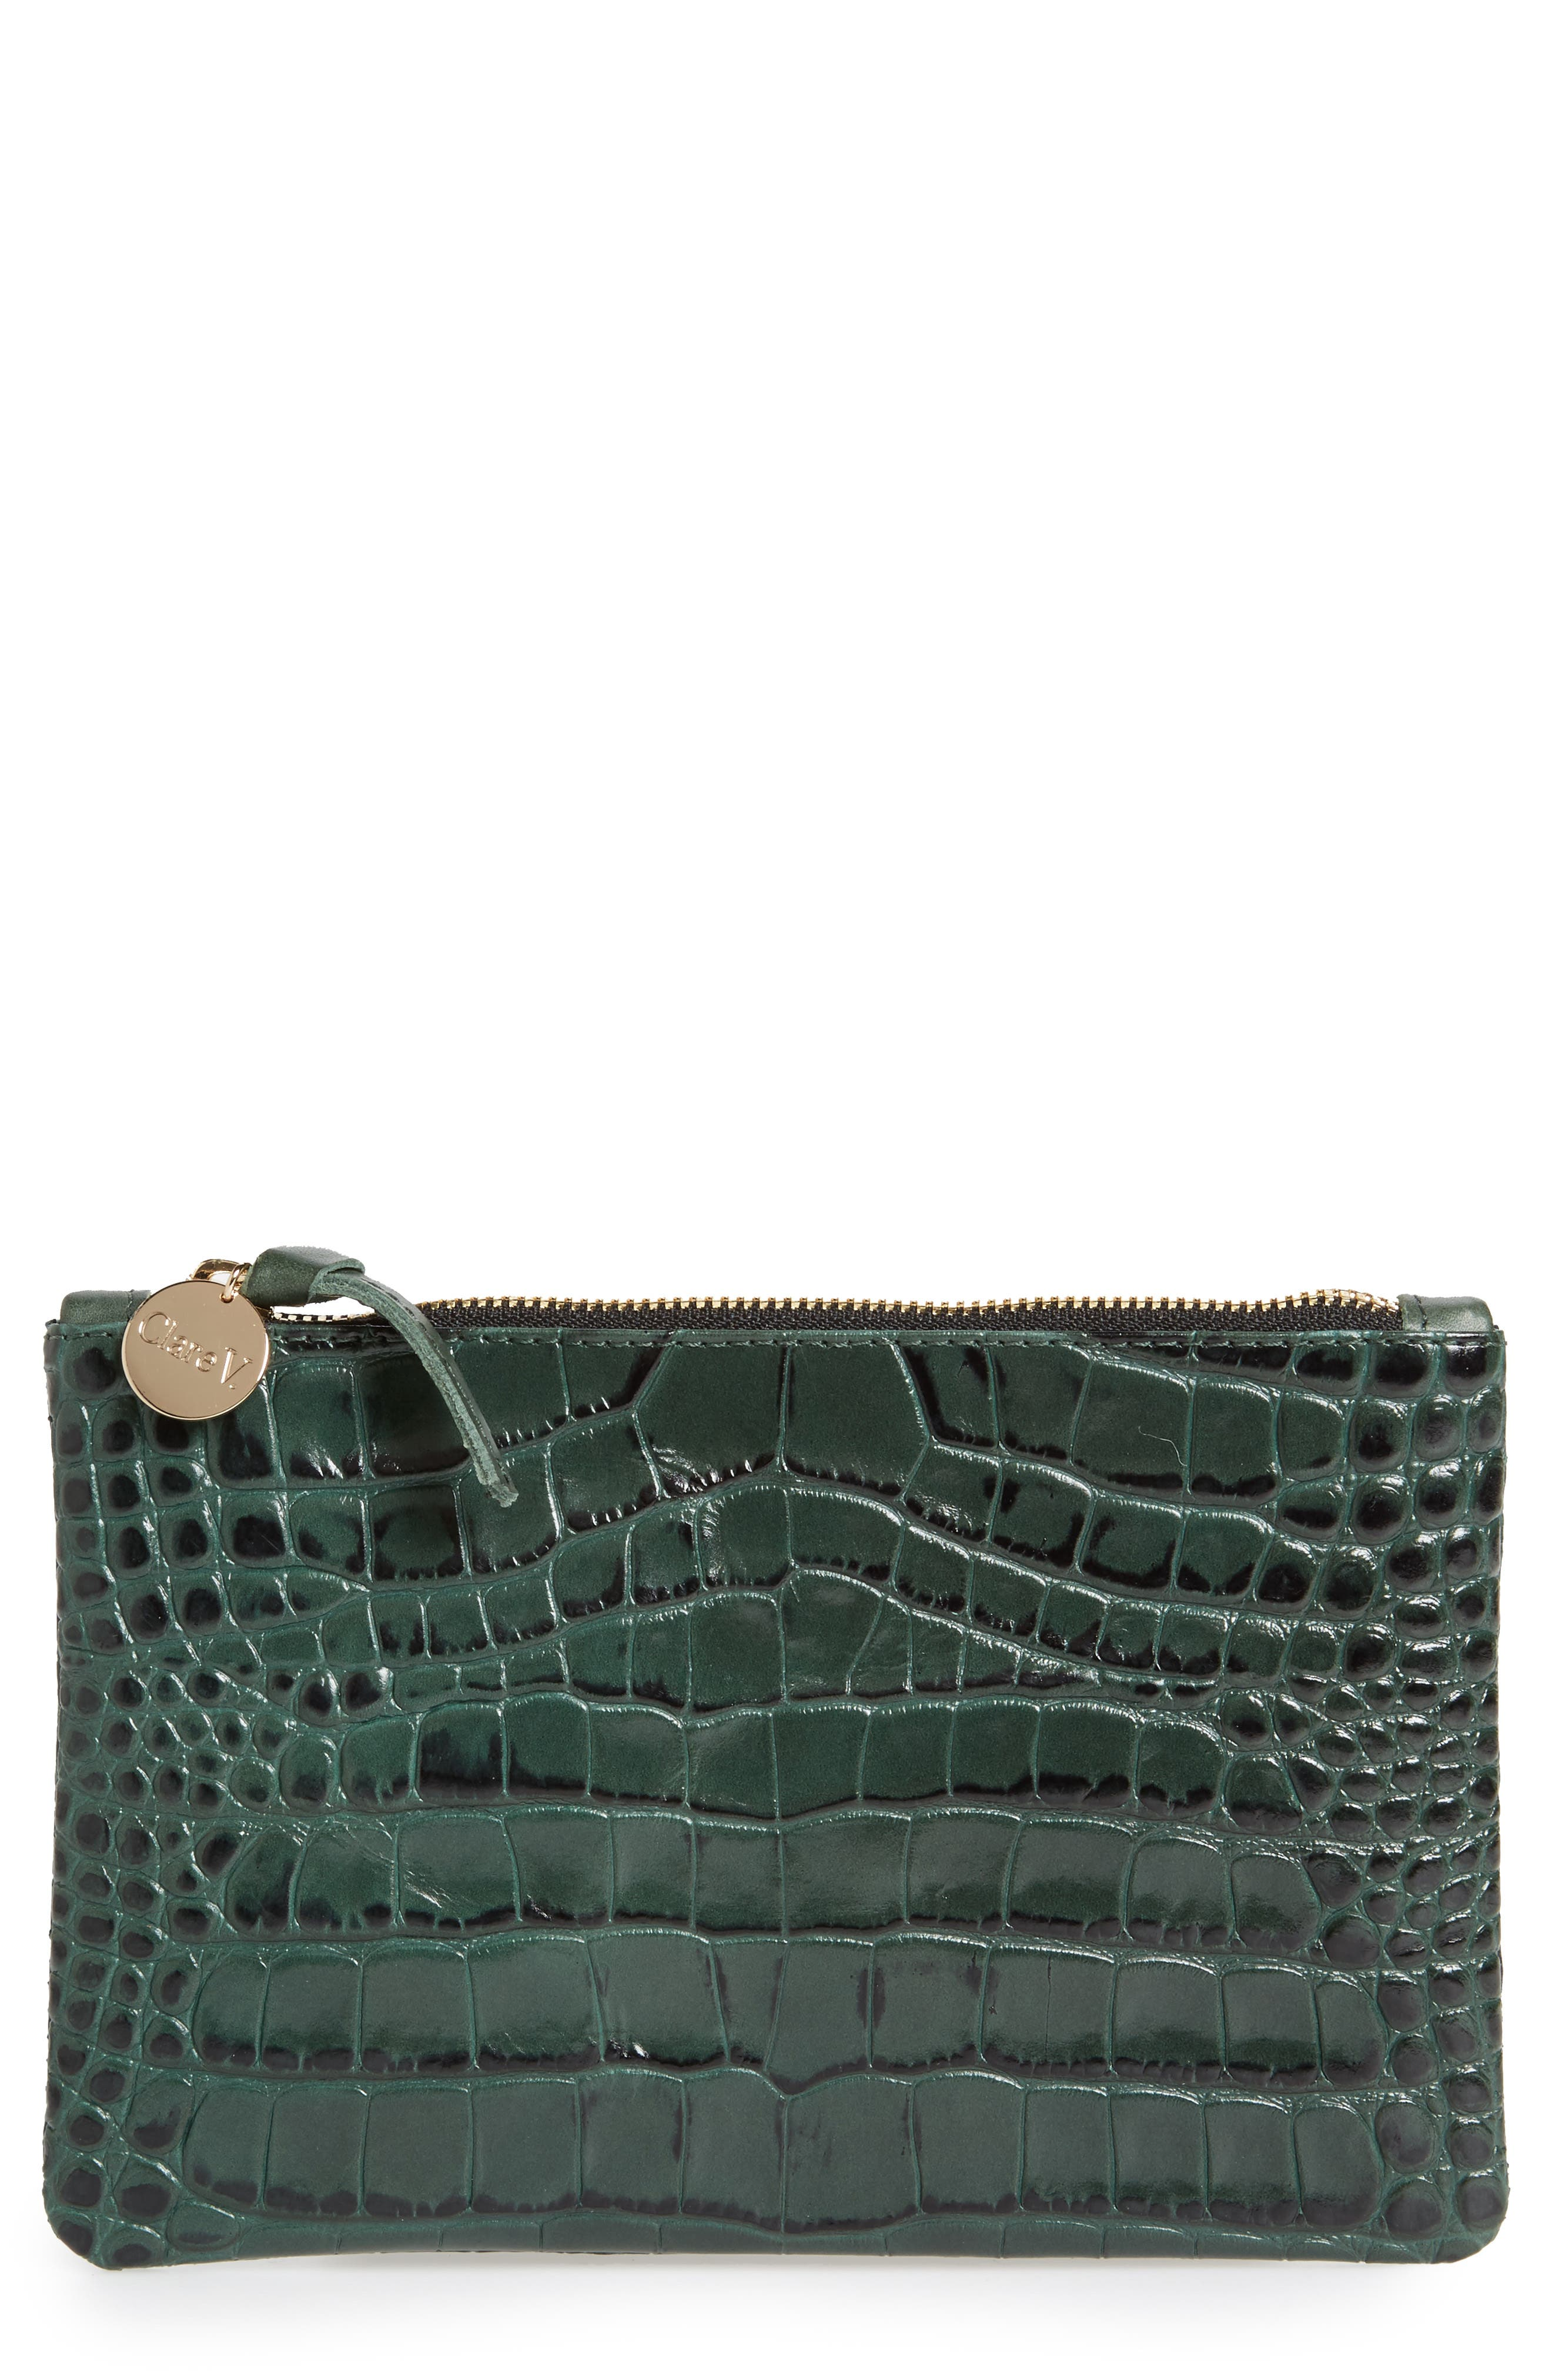 Croc Embossed Leather Clutch,                             Main thumbnail 1, color,                             300